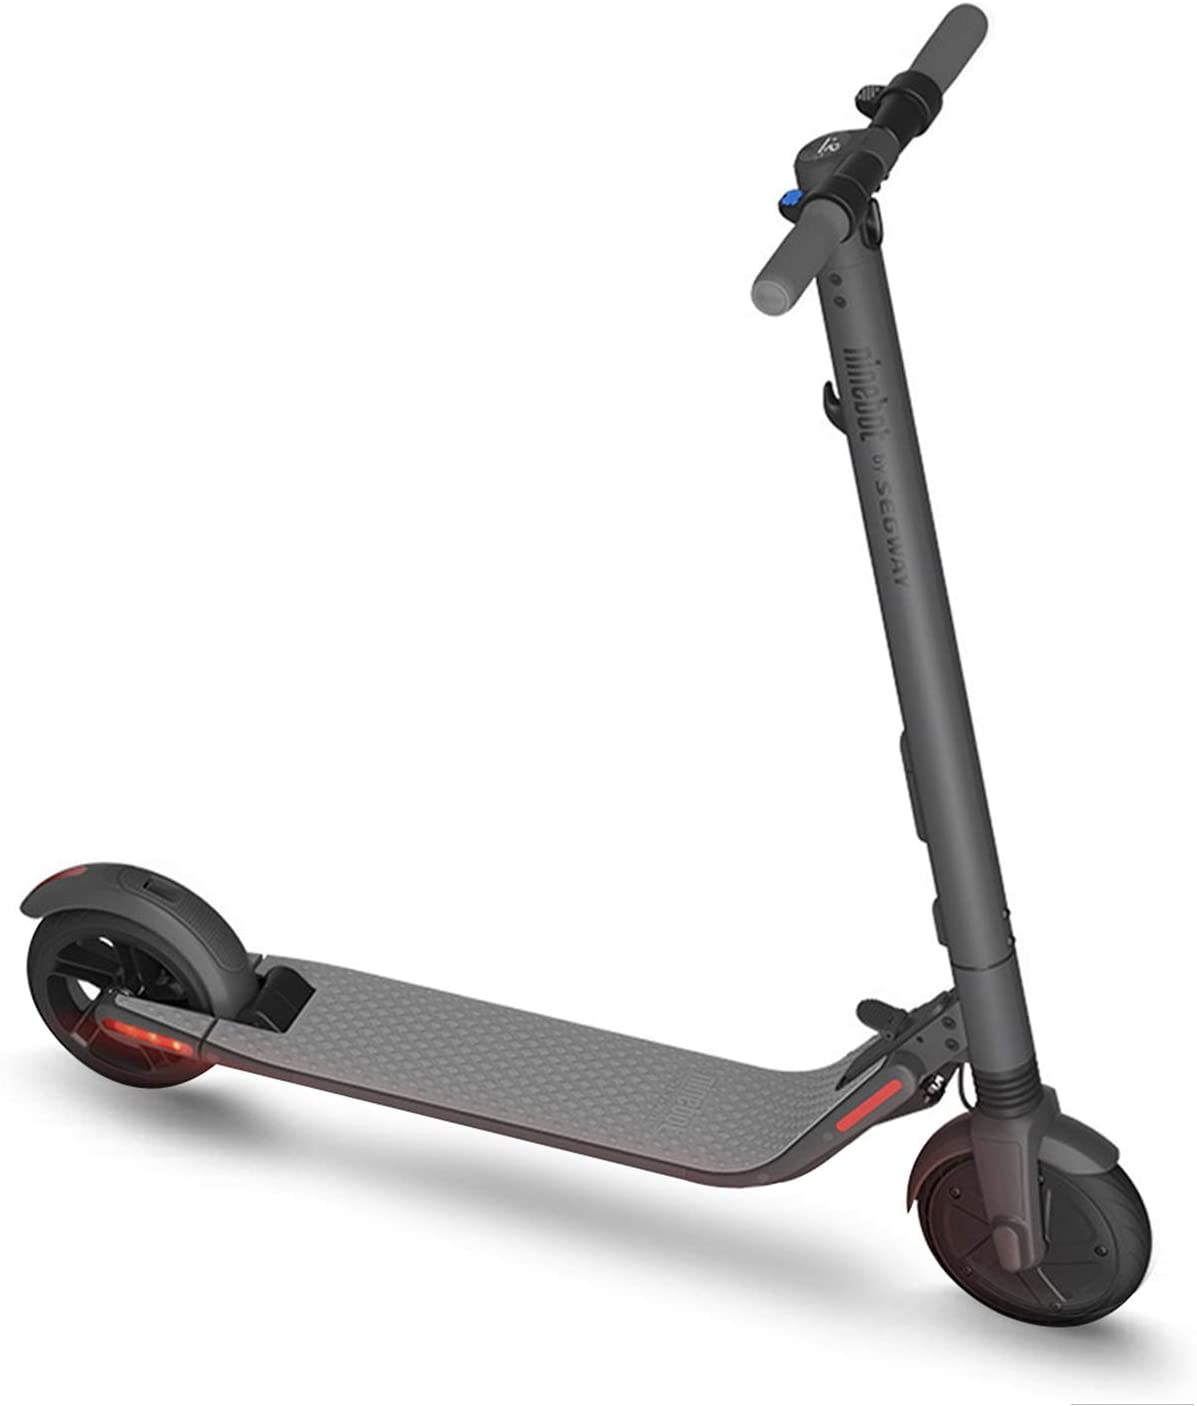 Segway-Ninebot-ES2-Electric-Kick-Scooter-Lighweight-Escooter